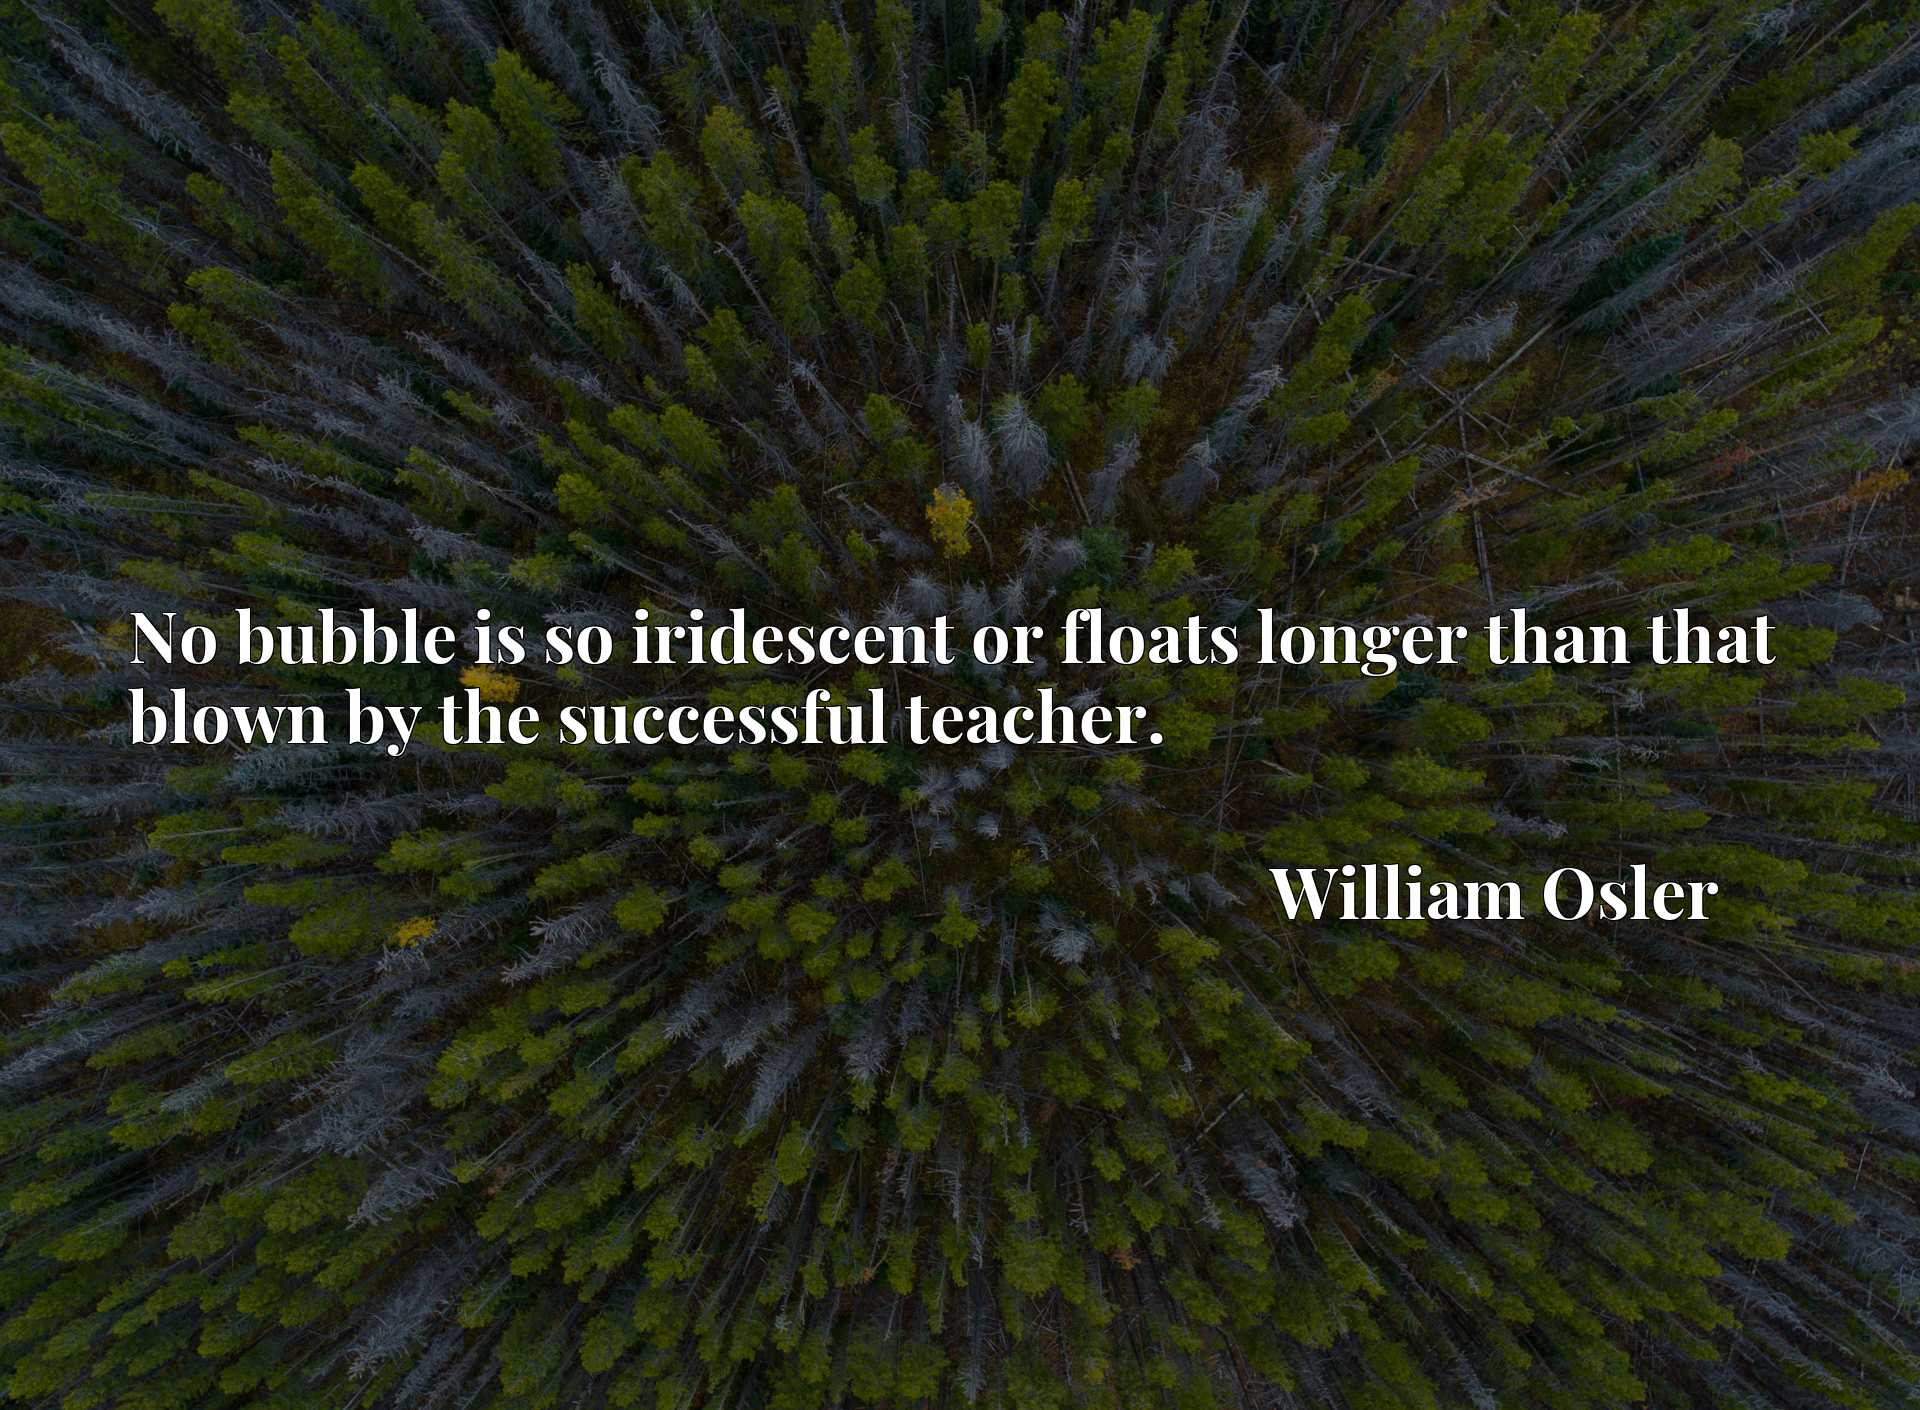 Quote Picture :No bubble is so iridescent or floats longer than that blown by the successful teacher.